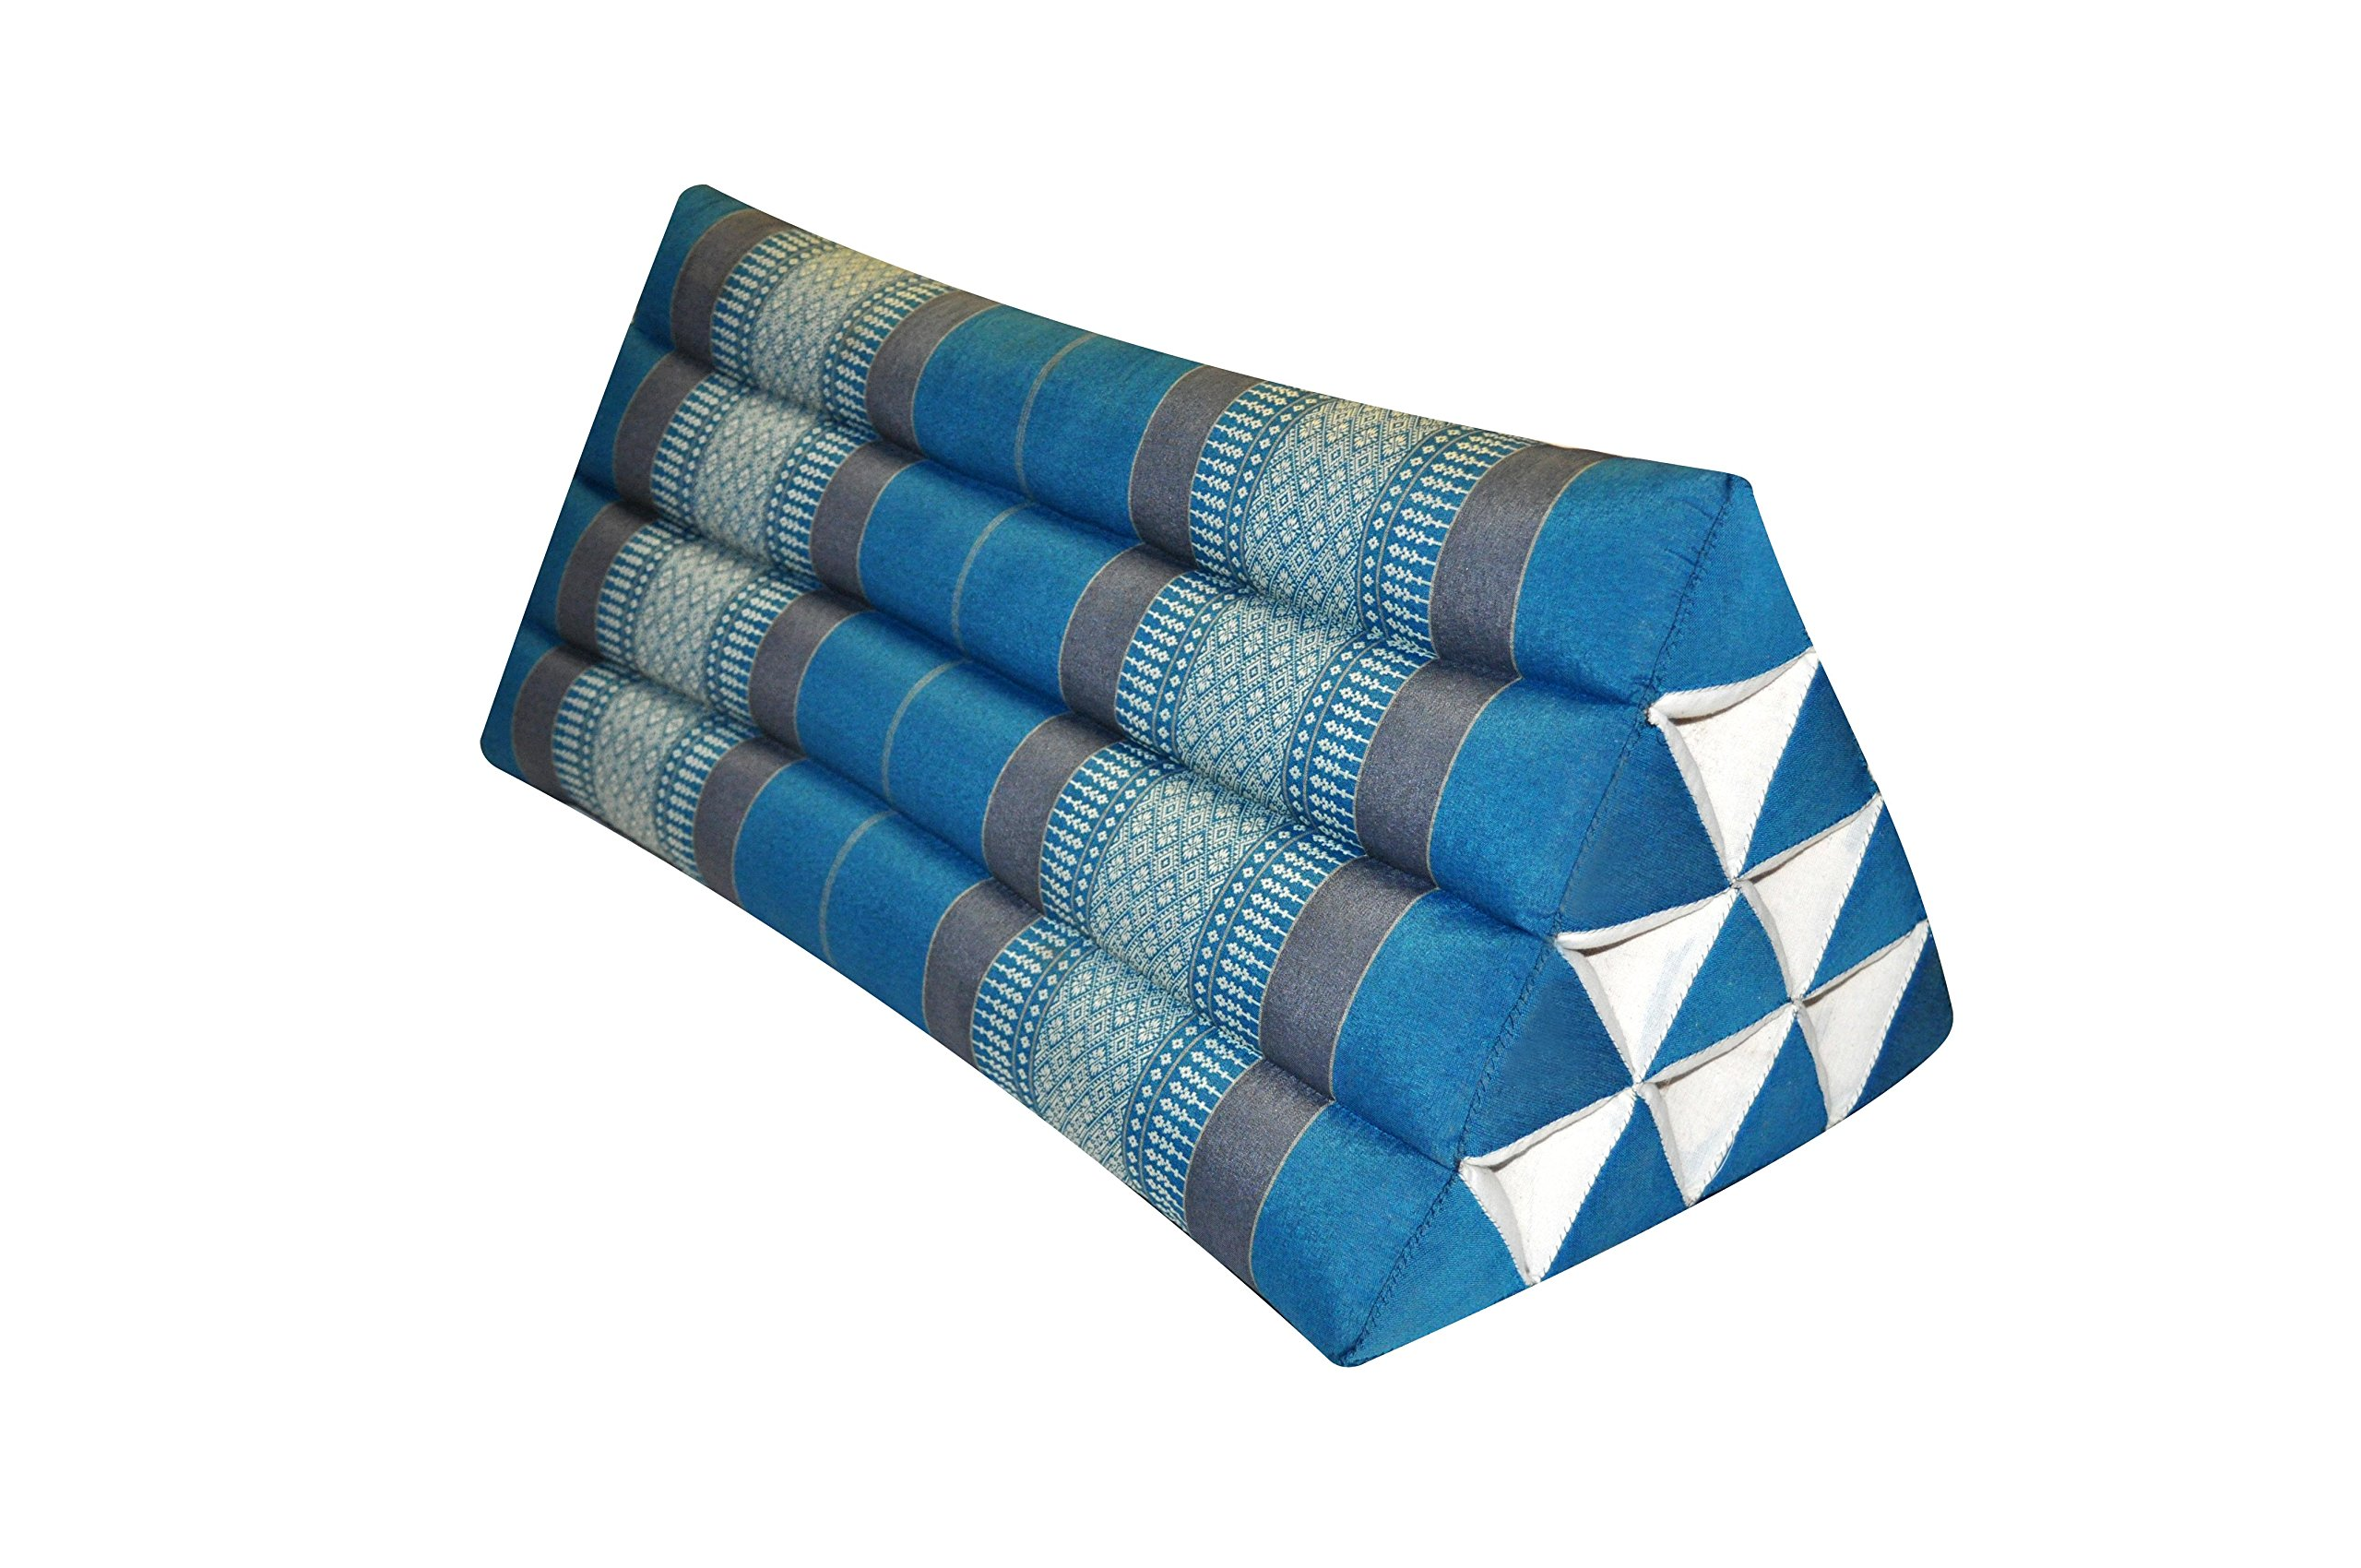 Thai triangular cushion XXL, blue/grey, relaxation, beach, kapok, made in Thailand. (82615)